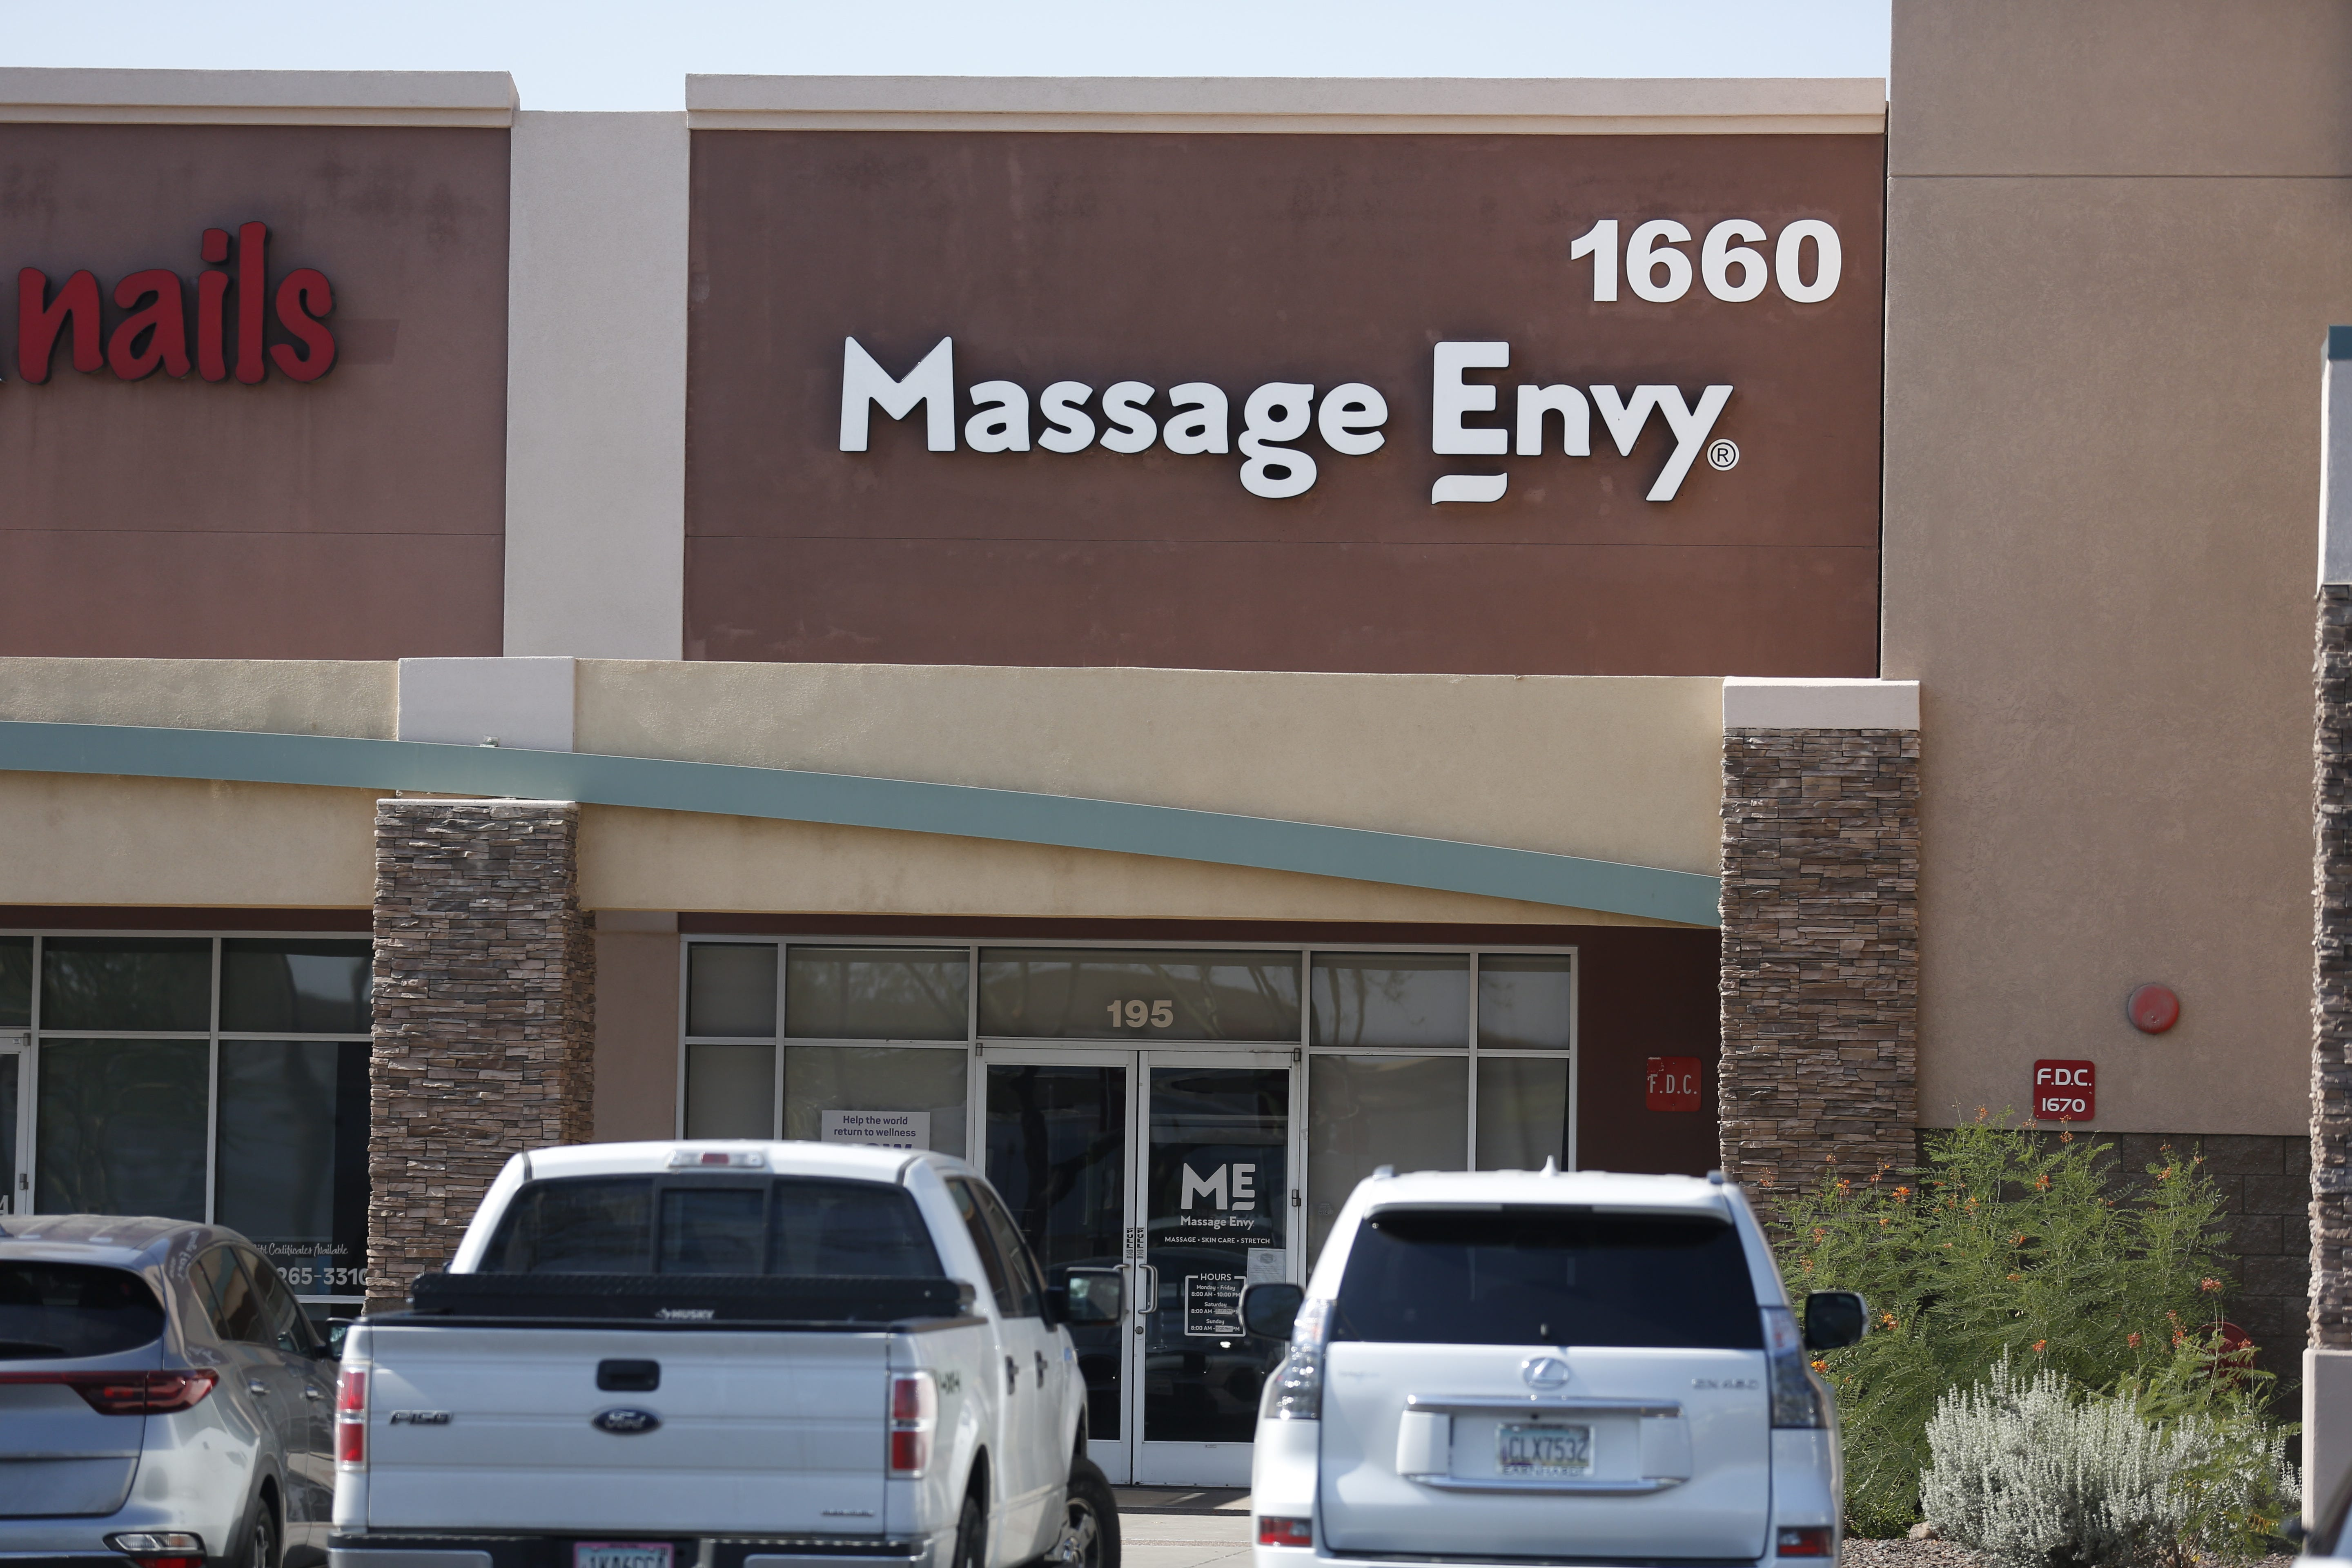 Massage Envy is modeled after fitness clubs, using a membership model that gives the company and its franchises predictable revenues.